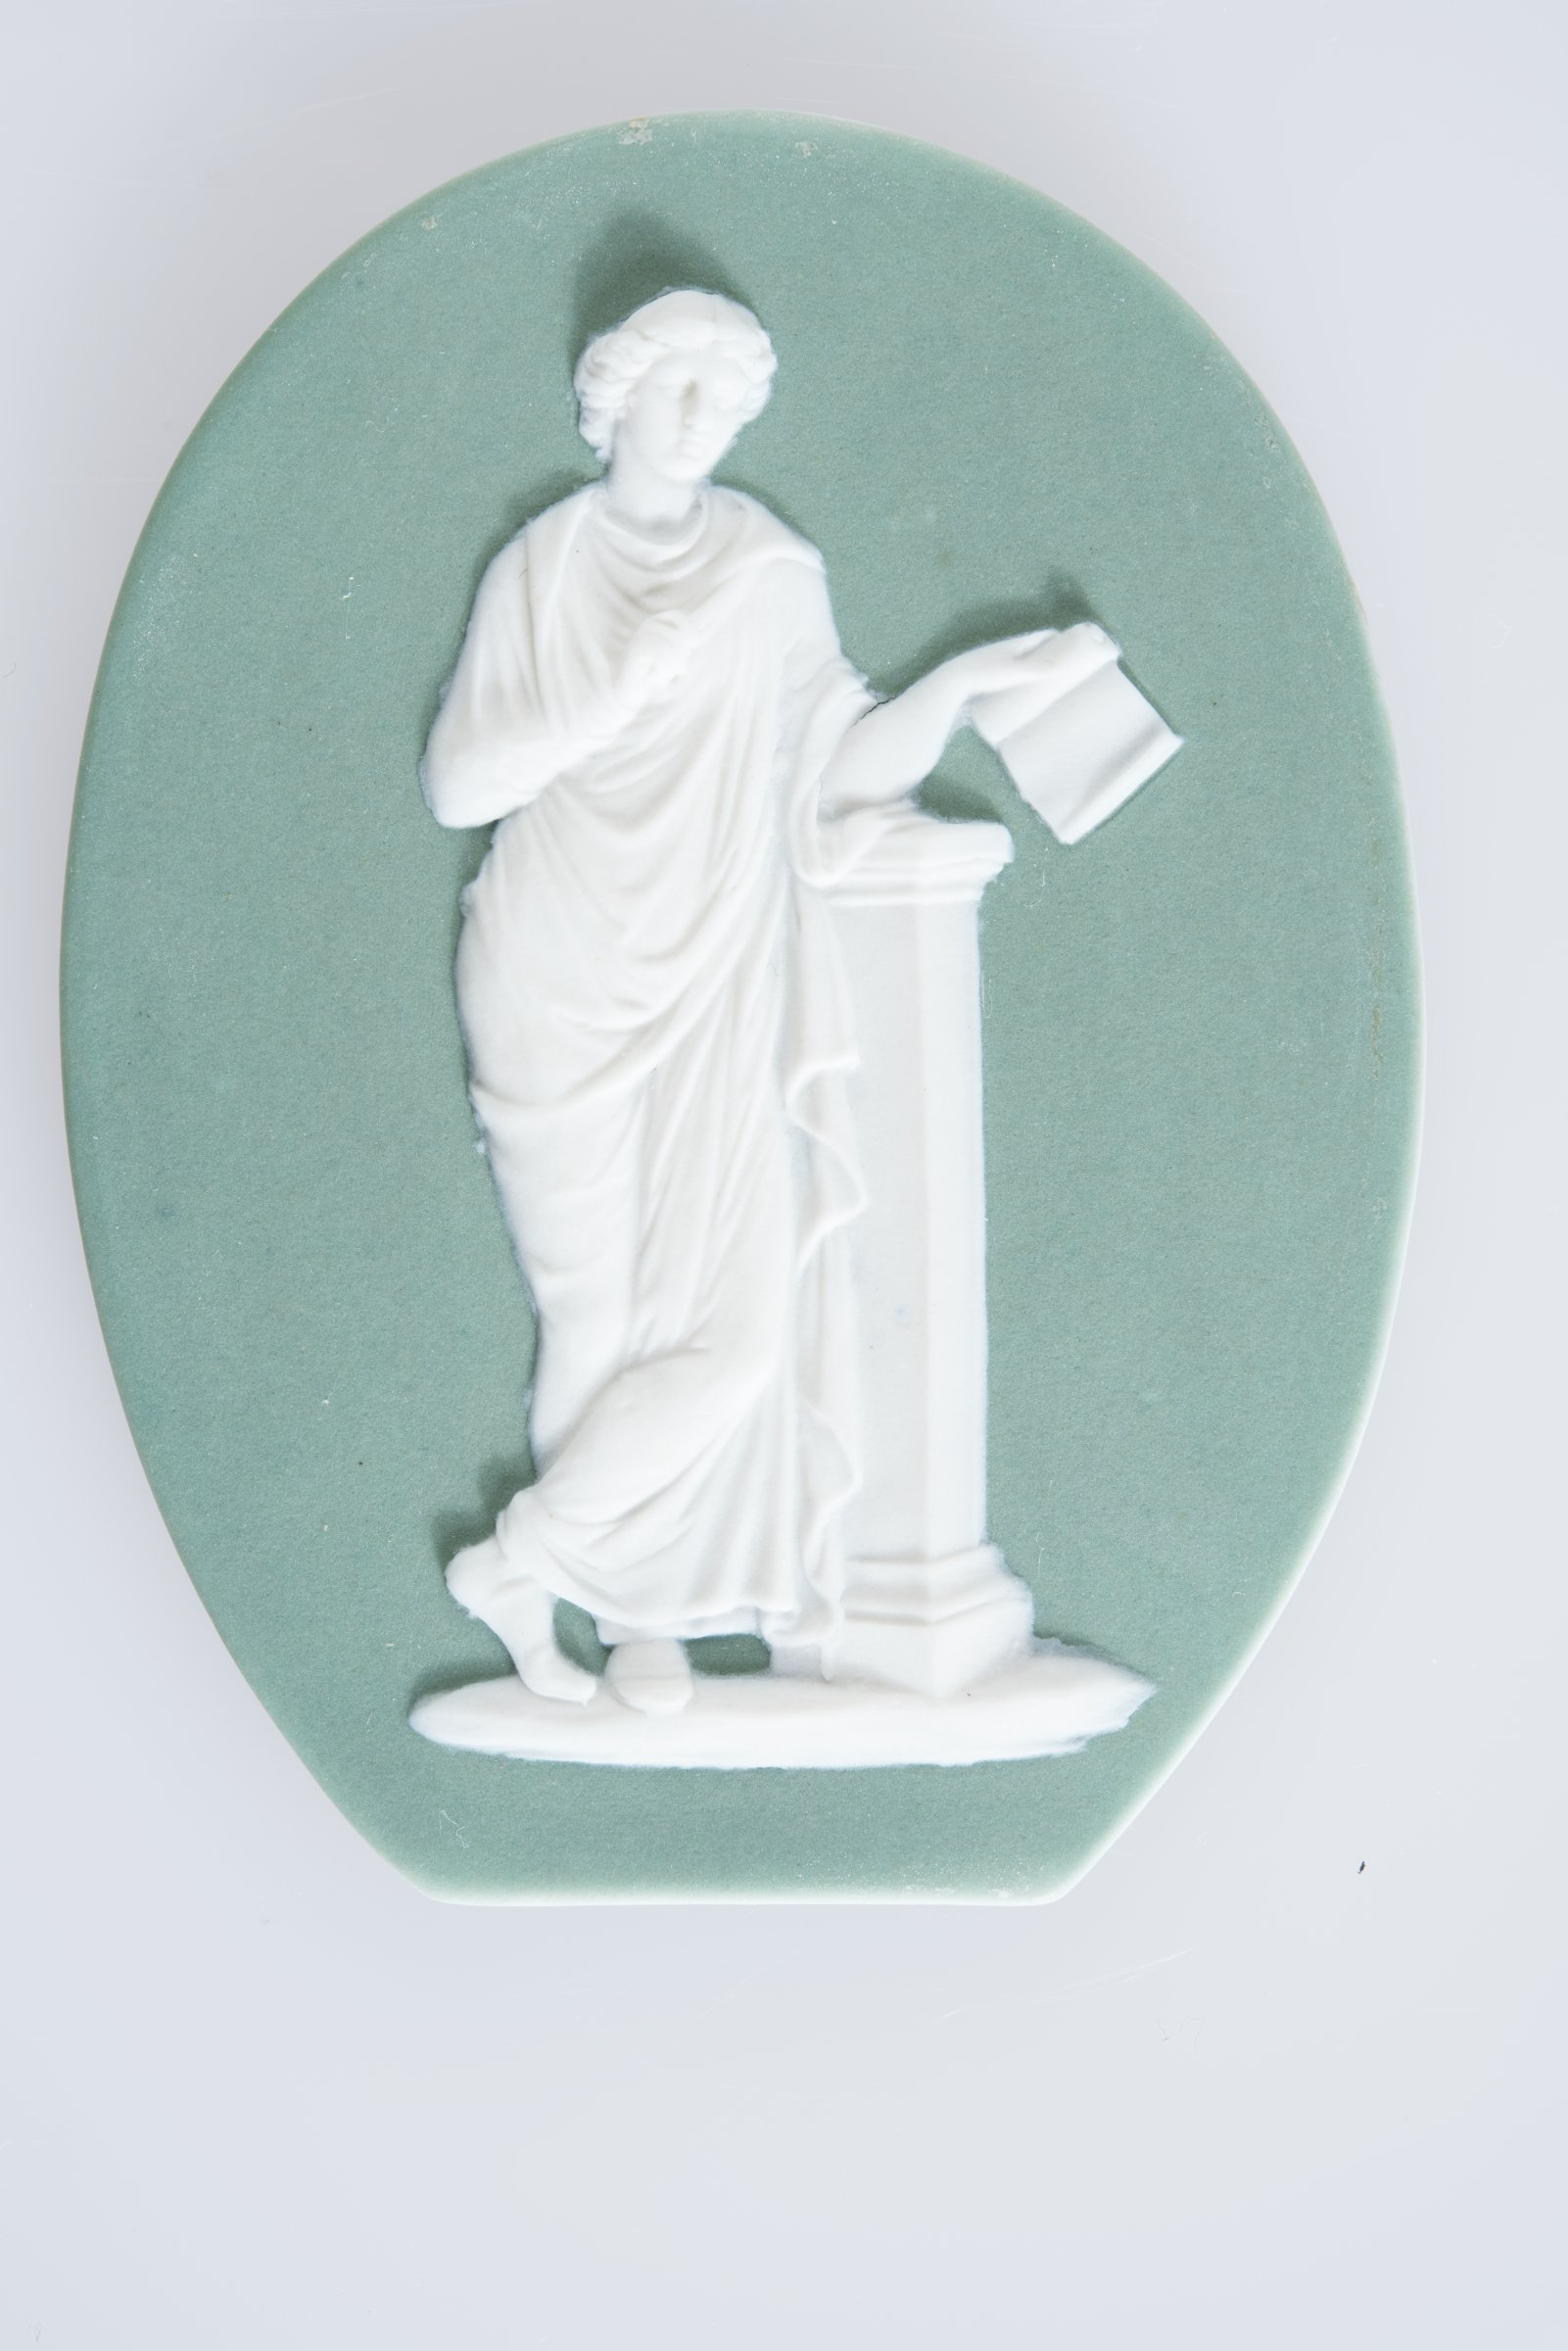 Small, oval plaque (truncated at the lower edge) of white jasper with green jasper dip and white relief decoration of the Muse Calliope, who presided over eloquence and heroic poetry, and often holds a tablet or roll of paper and stylus, standing in full figure next to a pedestal.